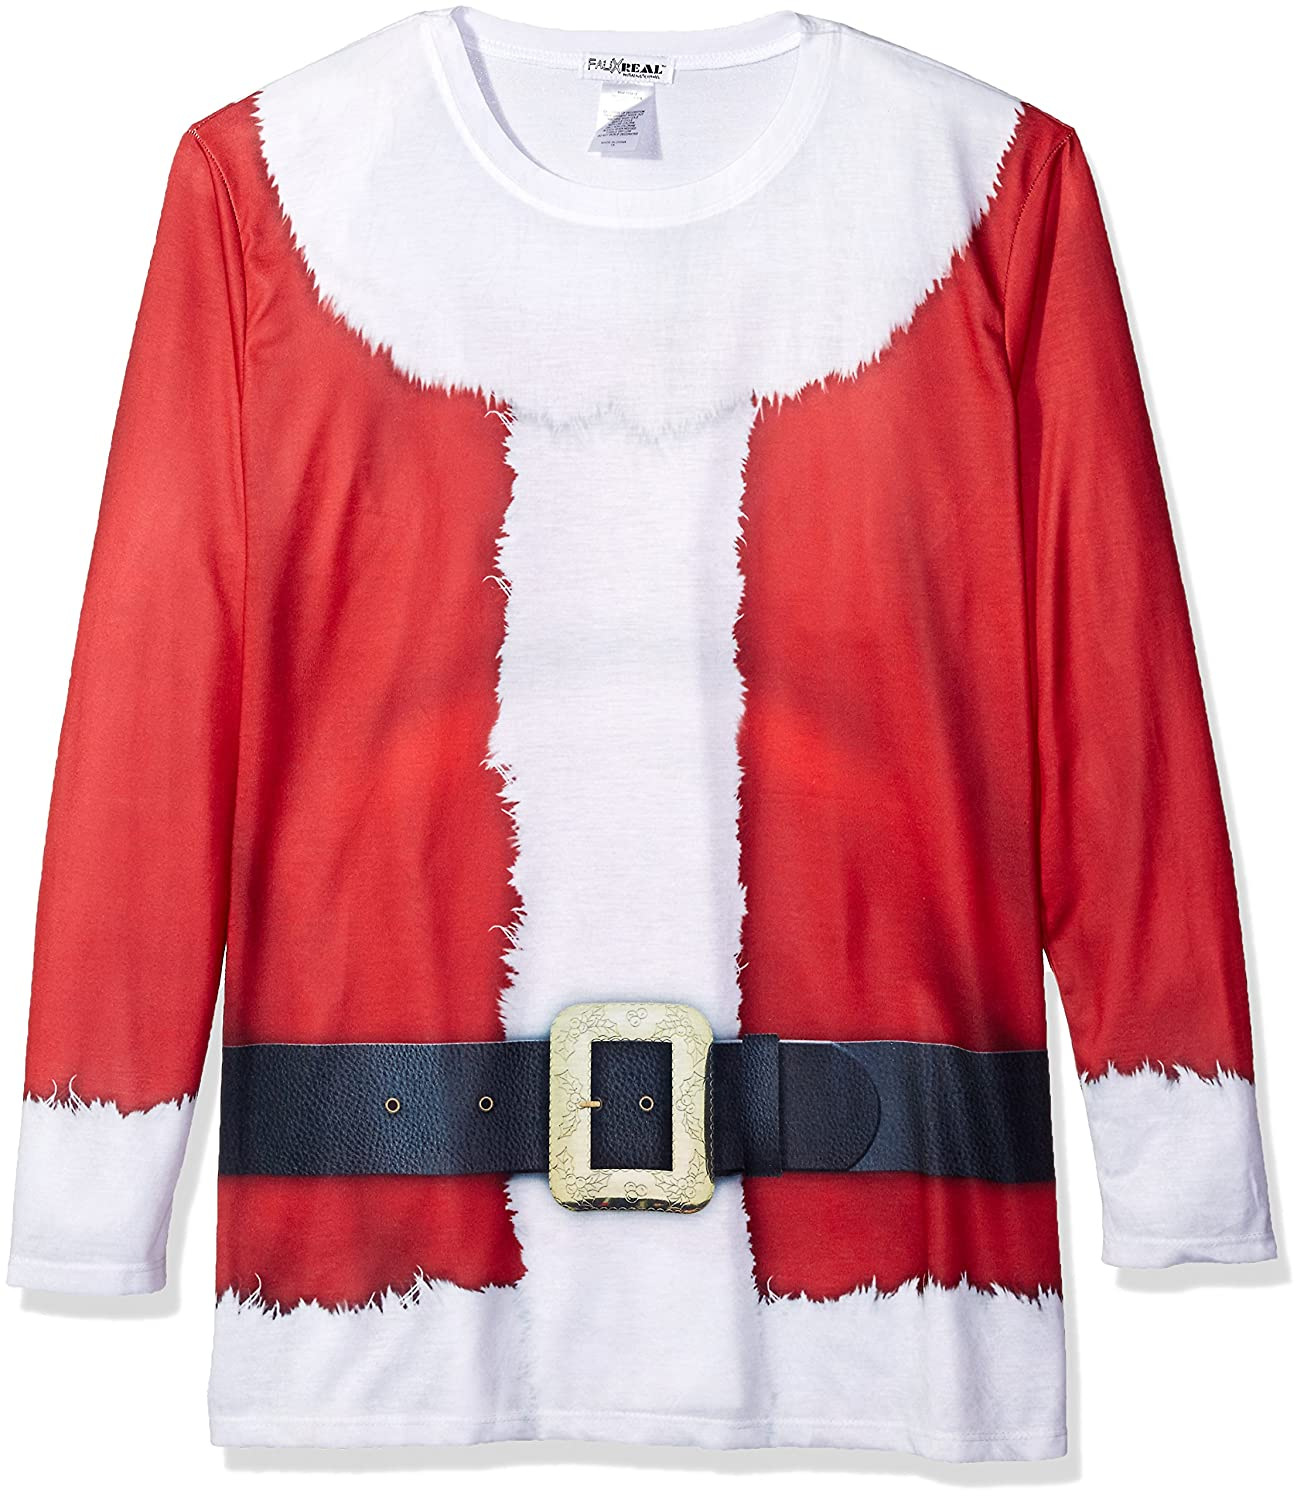 Faux Real Men's Extended Sizes Santa Claus Long Sleeve Shirt F134207